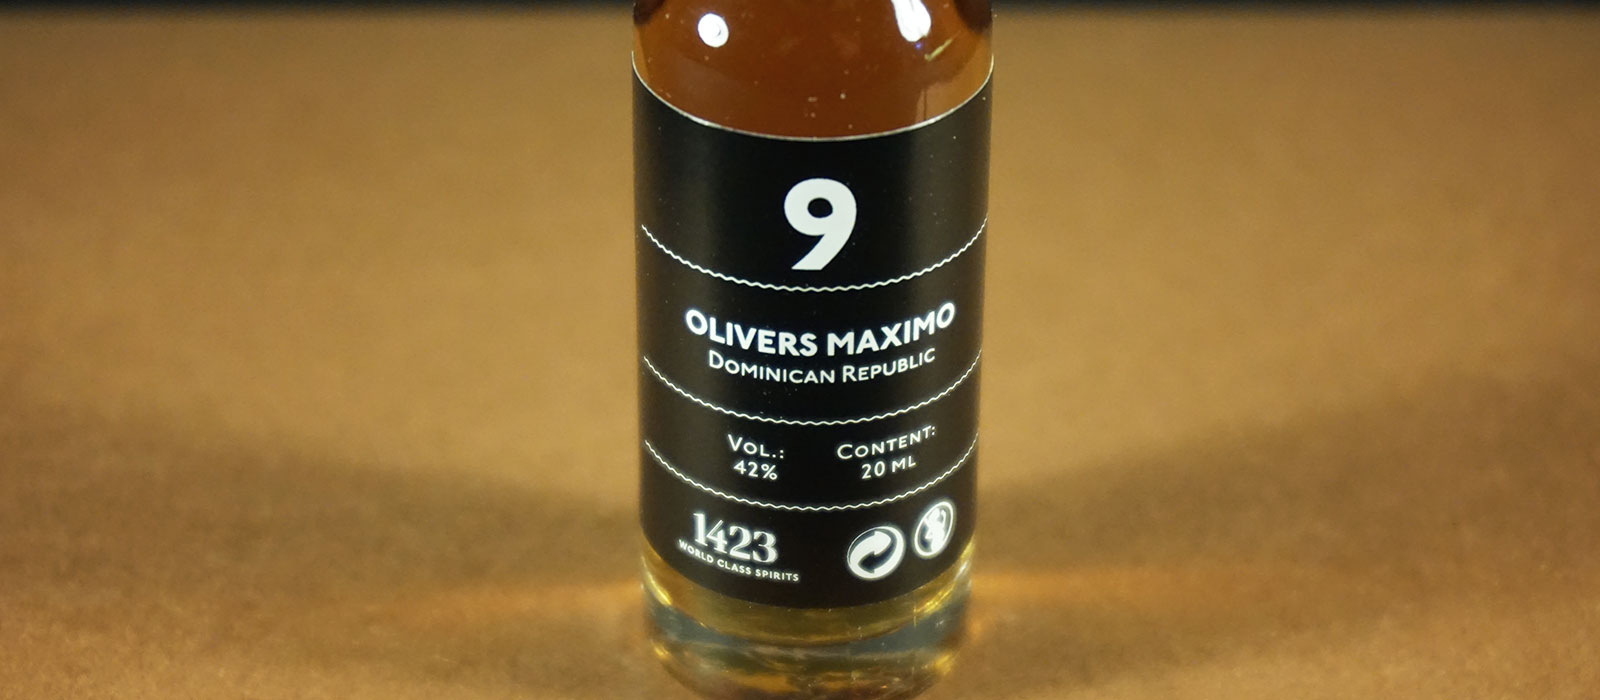 24 Days of Rum 2017: Dag 9 – Olivers Maximo